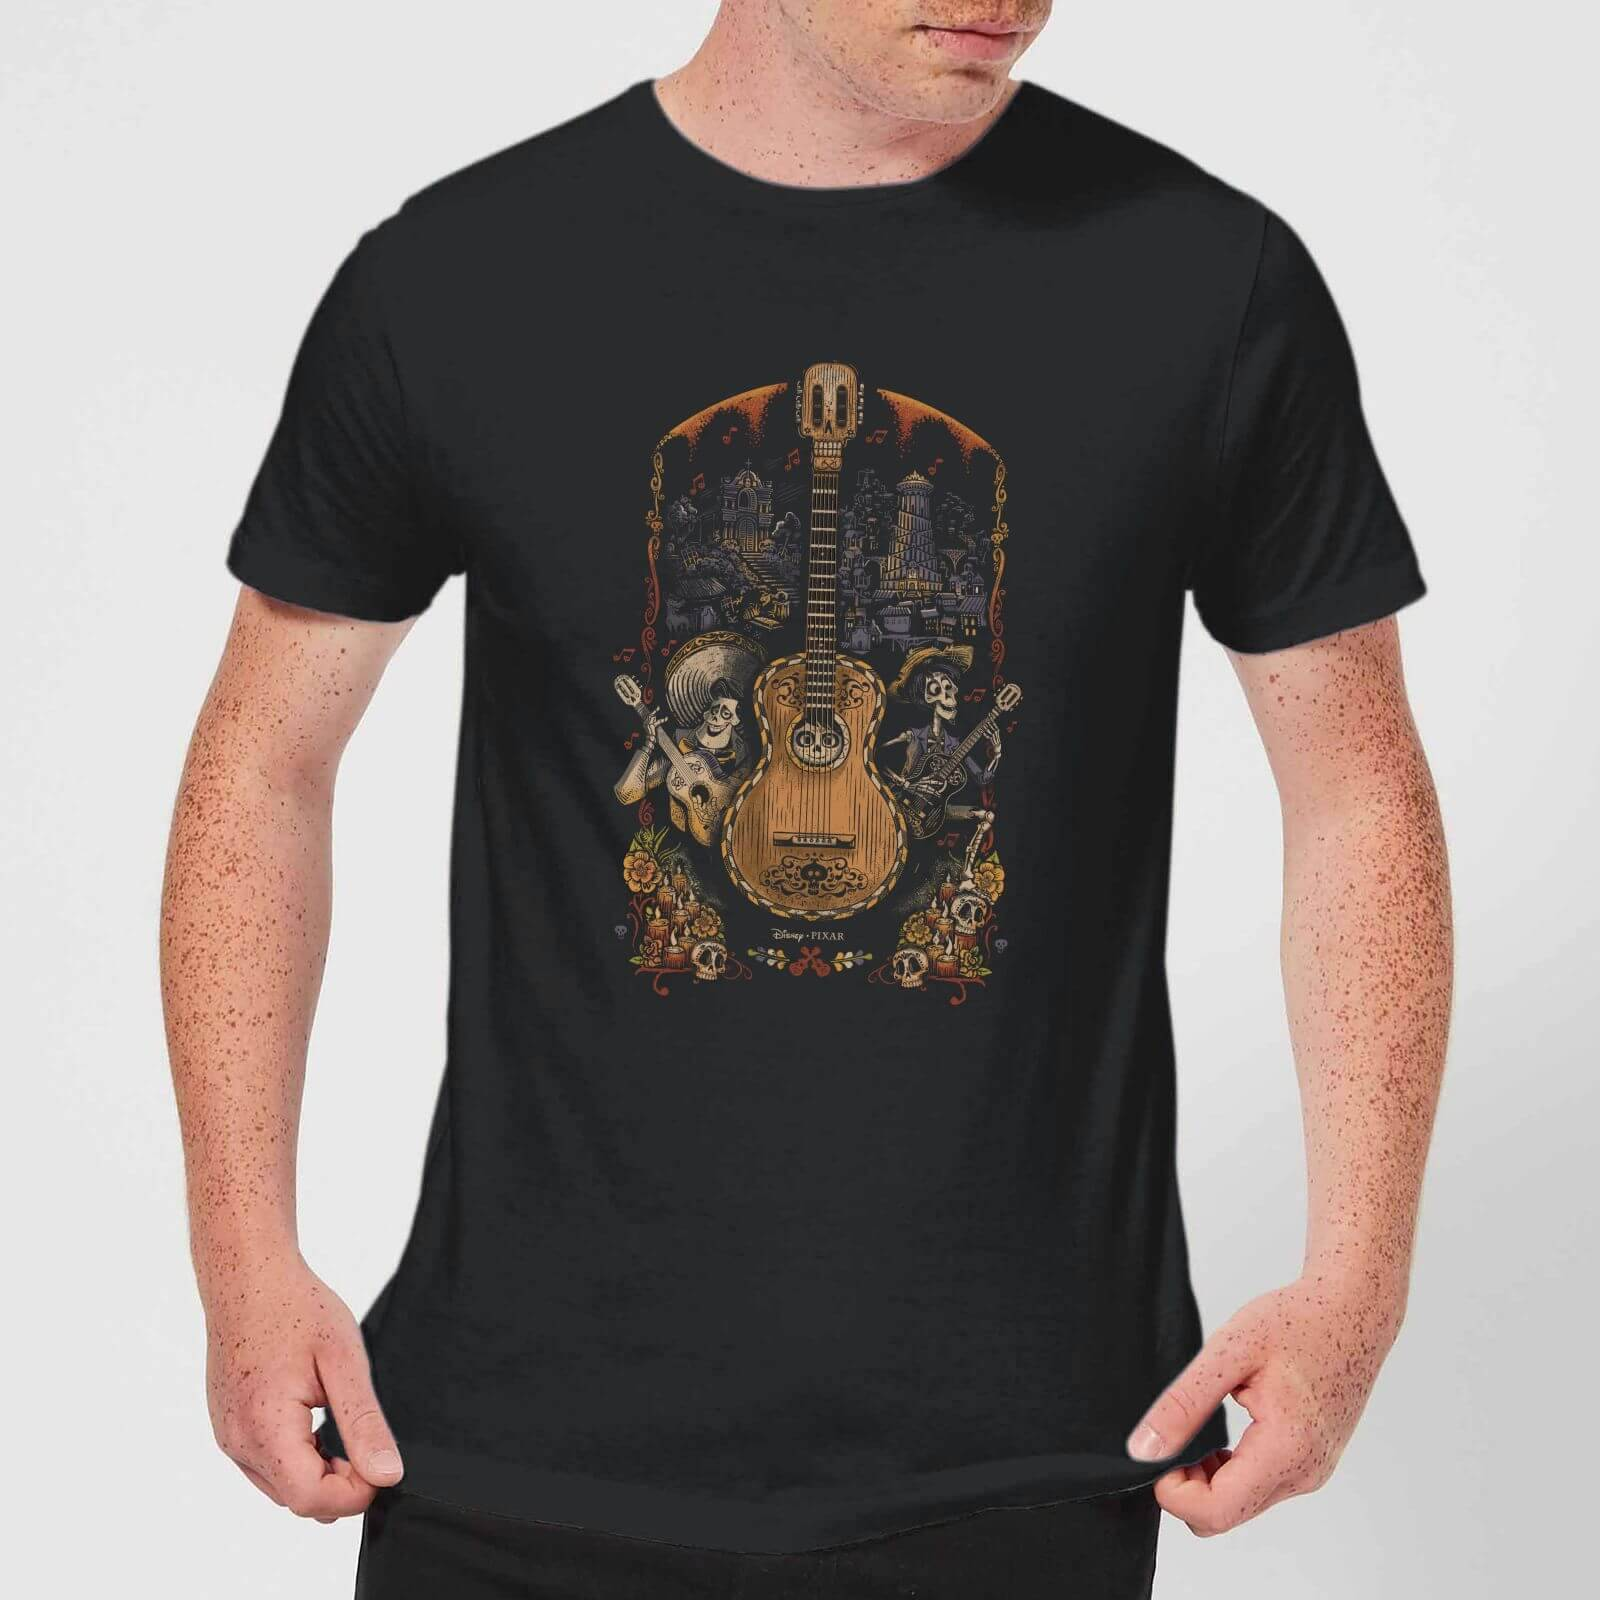 Disney Coco Guitar Poster Men's T-Shirt - Black - S - Black